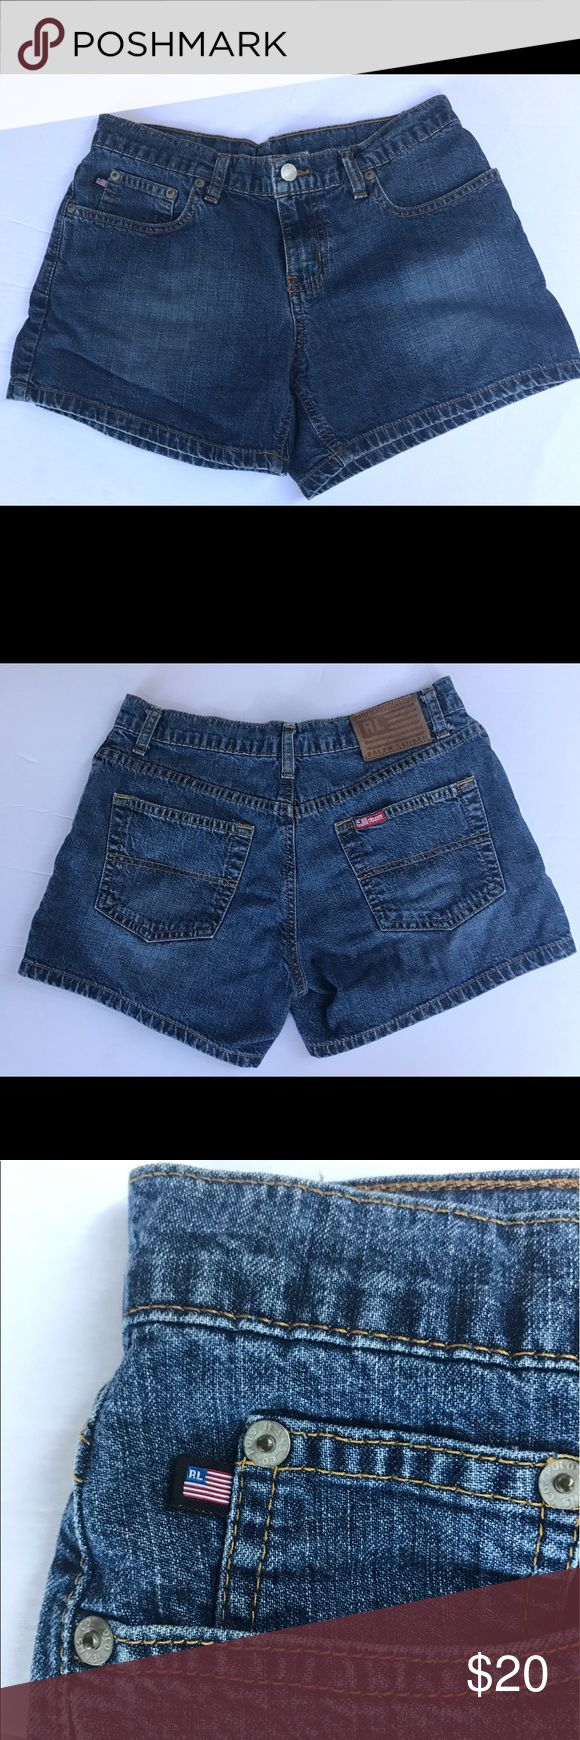 VINTAGE WOMENS RL POLO JEANS DENIM SHORT Super cute RALPH LAUREN Polo Jeans DENIM shorts! Great condition! Perfect to dress up or down. Size 2. polo jeans co Shorts Jean Shorts